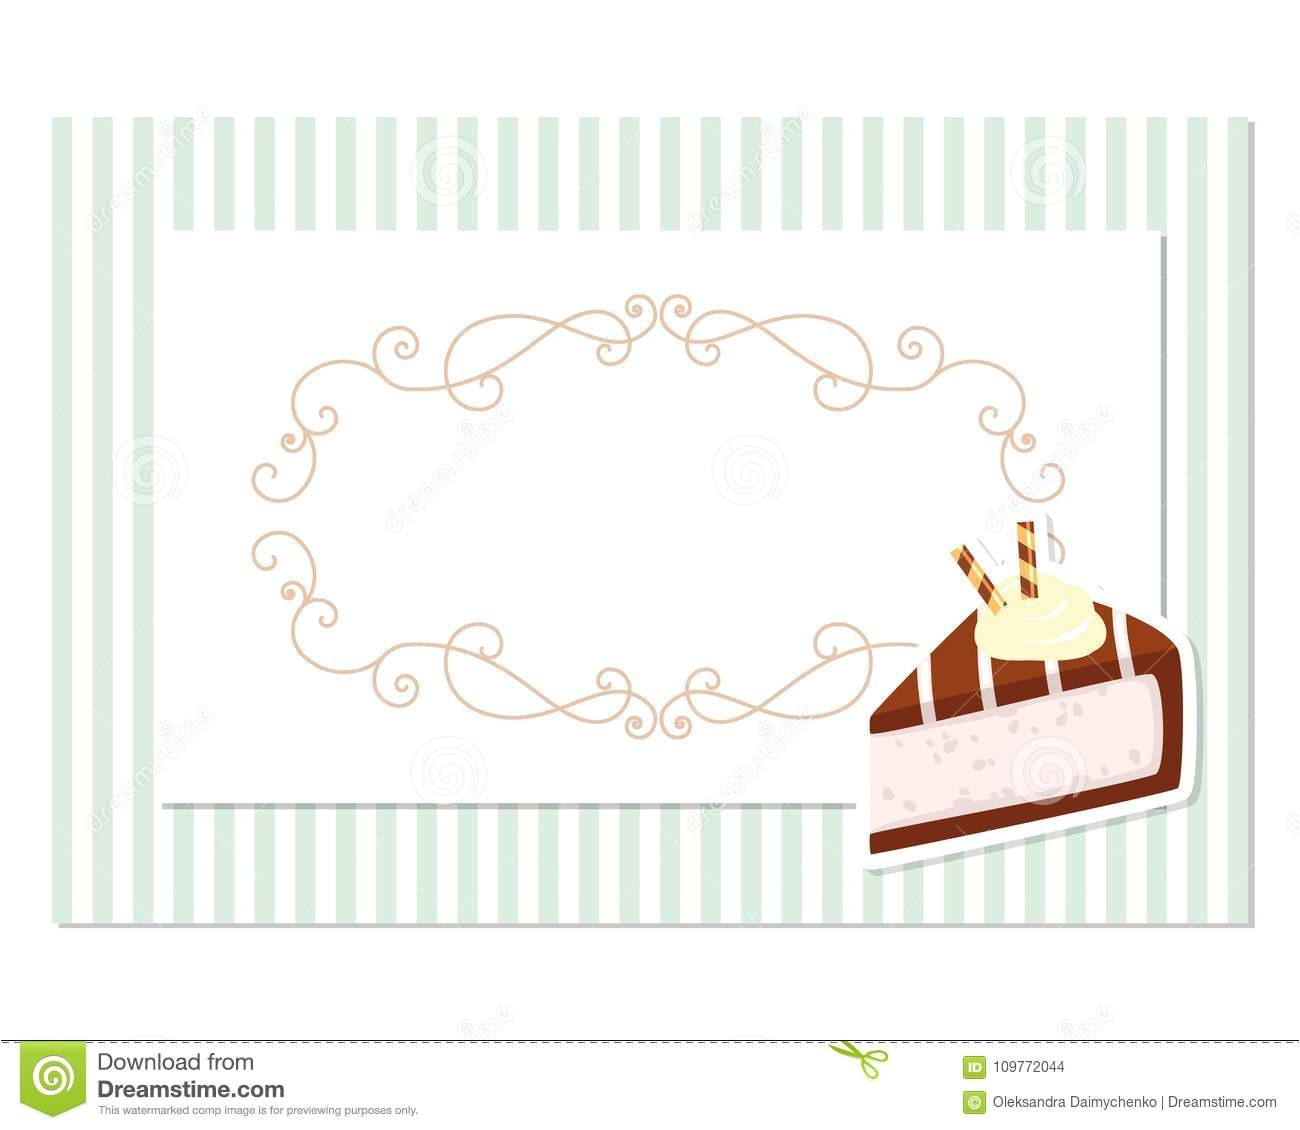 vintage greeting card template filigree frame stripped retro background birthday wedding invitation bakery design vintage 109772044 jpg